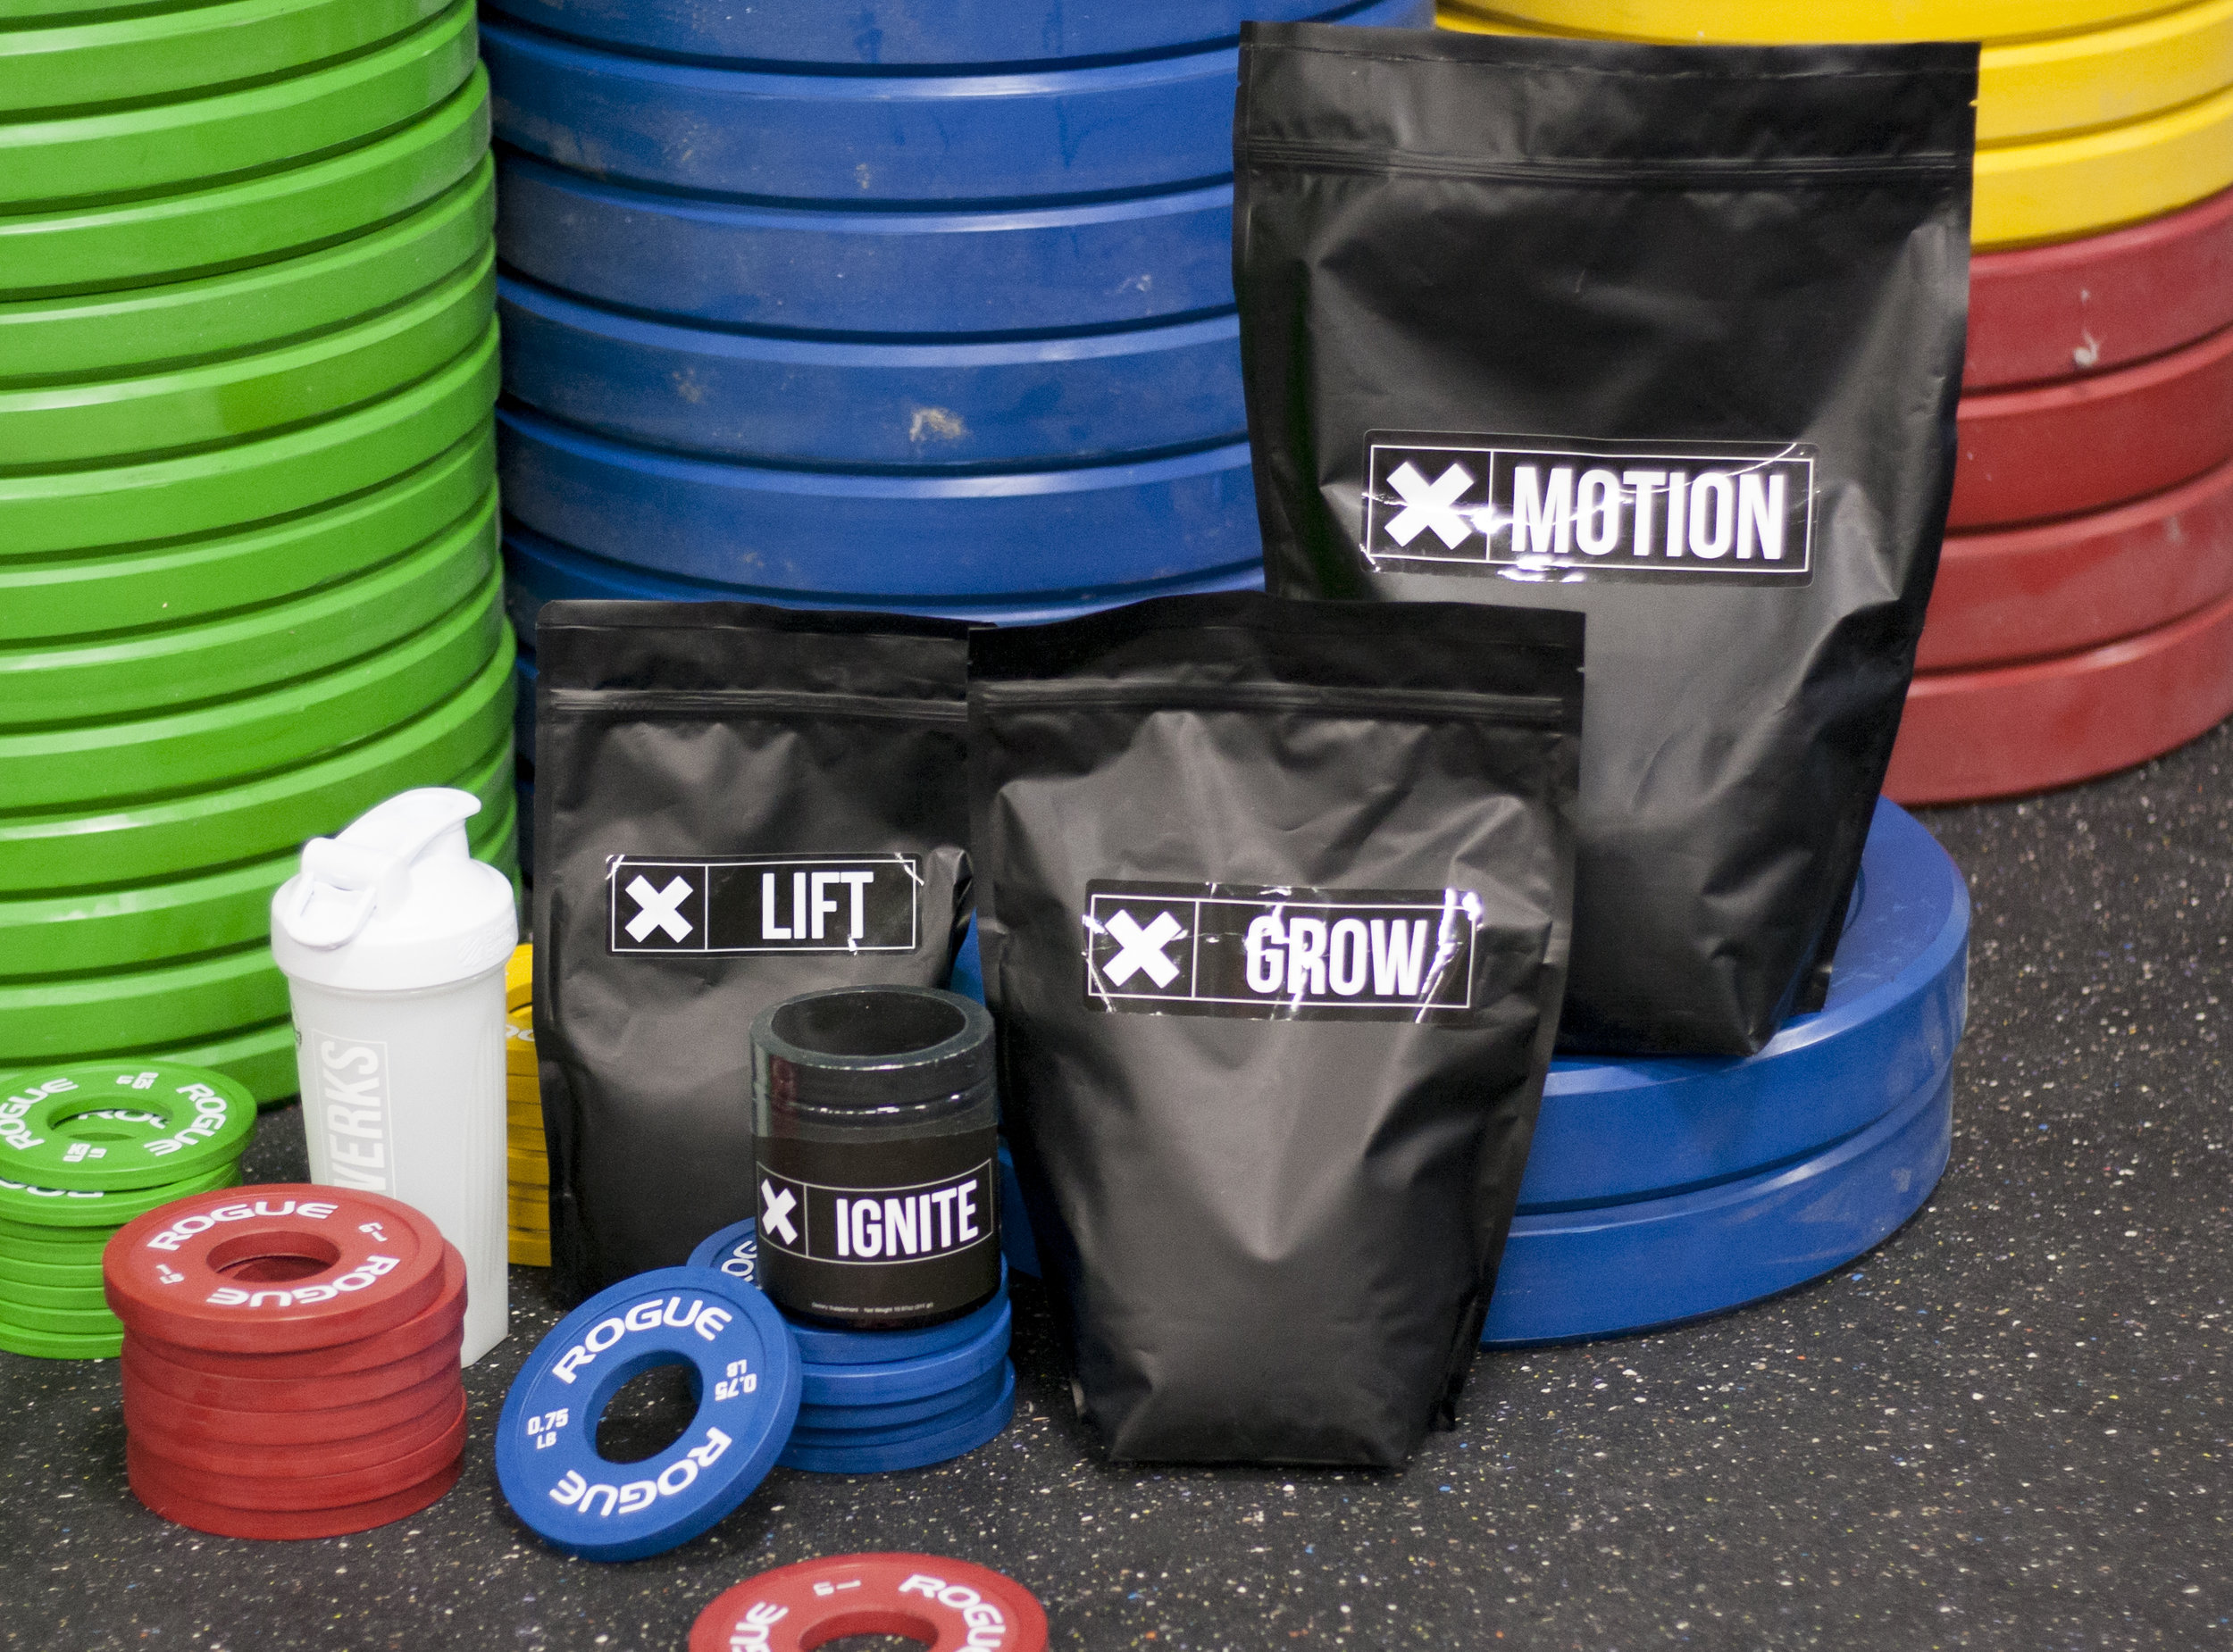 XWERKS - MOTION (CARBS, BCAAS, AND ELECTROLYTES): GRAPE AND RASPBERRY LEMONADEGROW (WHEY PROTEIN): CHOCOLATE, VANILLA, AND PEANUT BUTTERIGNITE (PRE-WORKOUT): GREEN APPLE, BLUE RAZZ, AND ORANGELIFT (CREATINE): UNFLAVORED